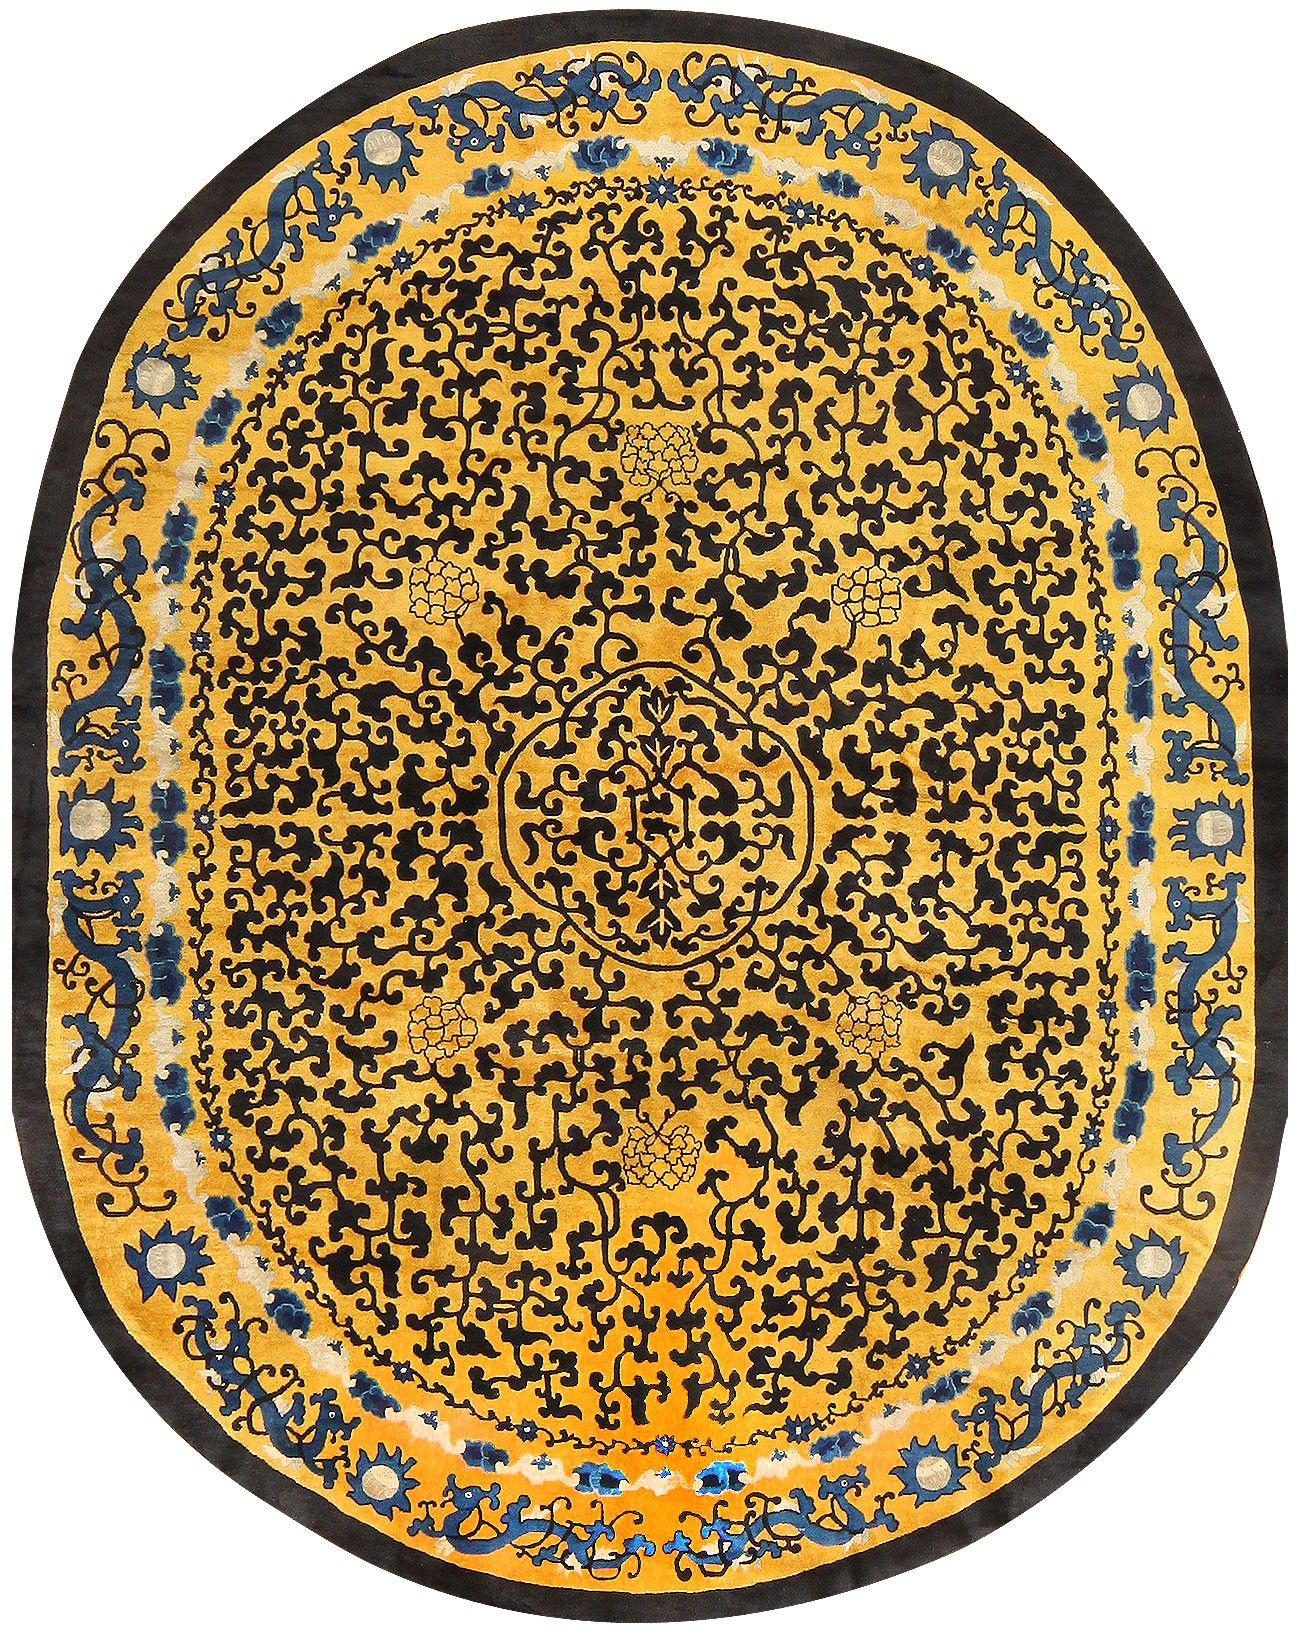 Antique Oval Chinese Rug 48215 Chinese Rug Chinoiserie Furniture Antique Rugs